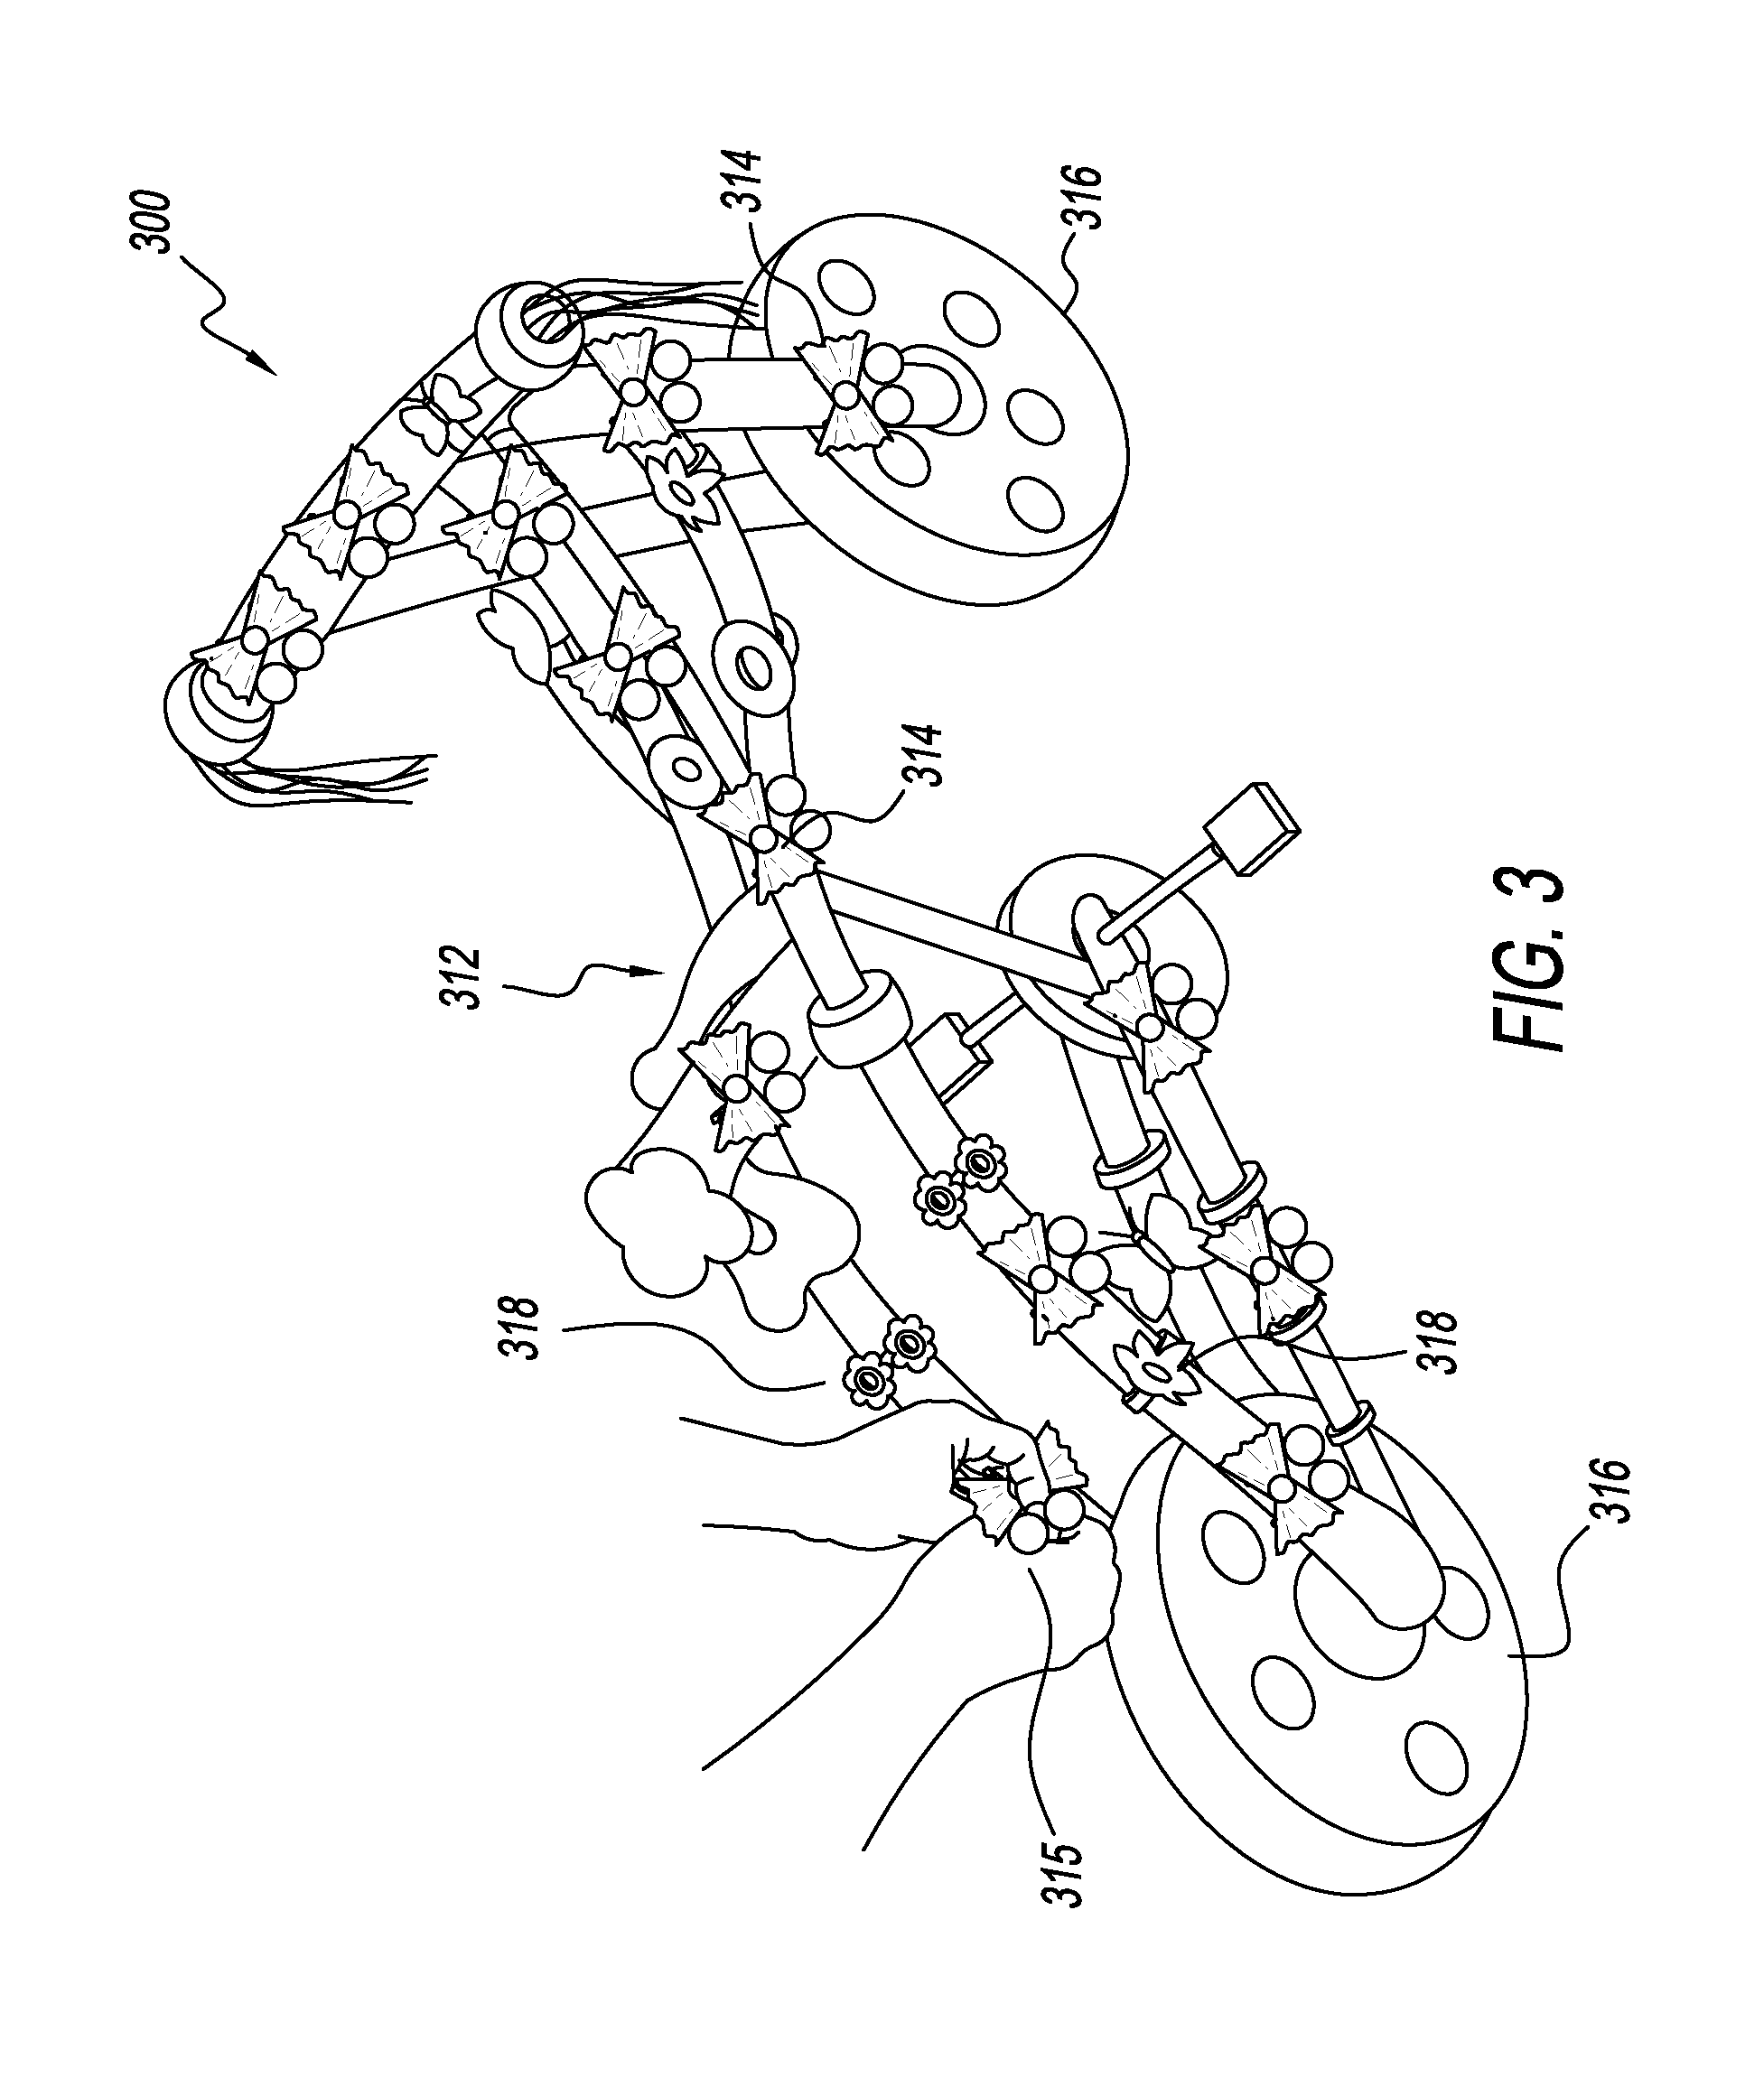 Brevet Us20130193097 Little Girls Things Hair Accessory Bosch Washing Machine Wiring Diagram Patent Drawing